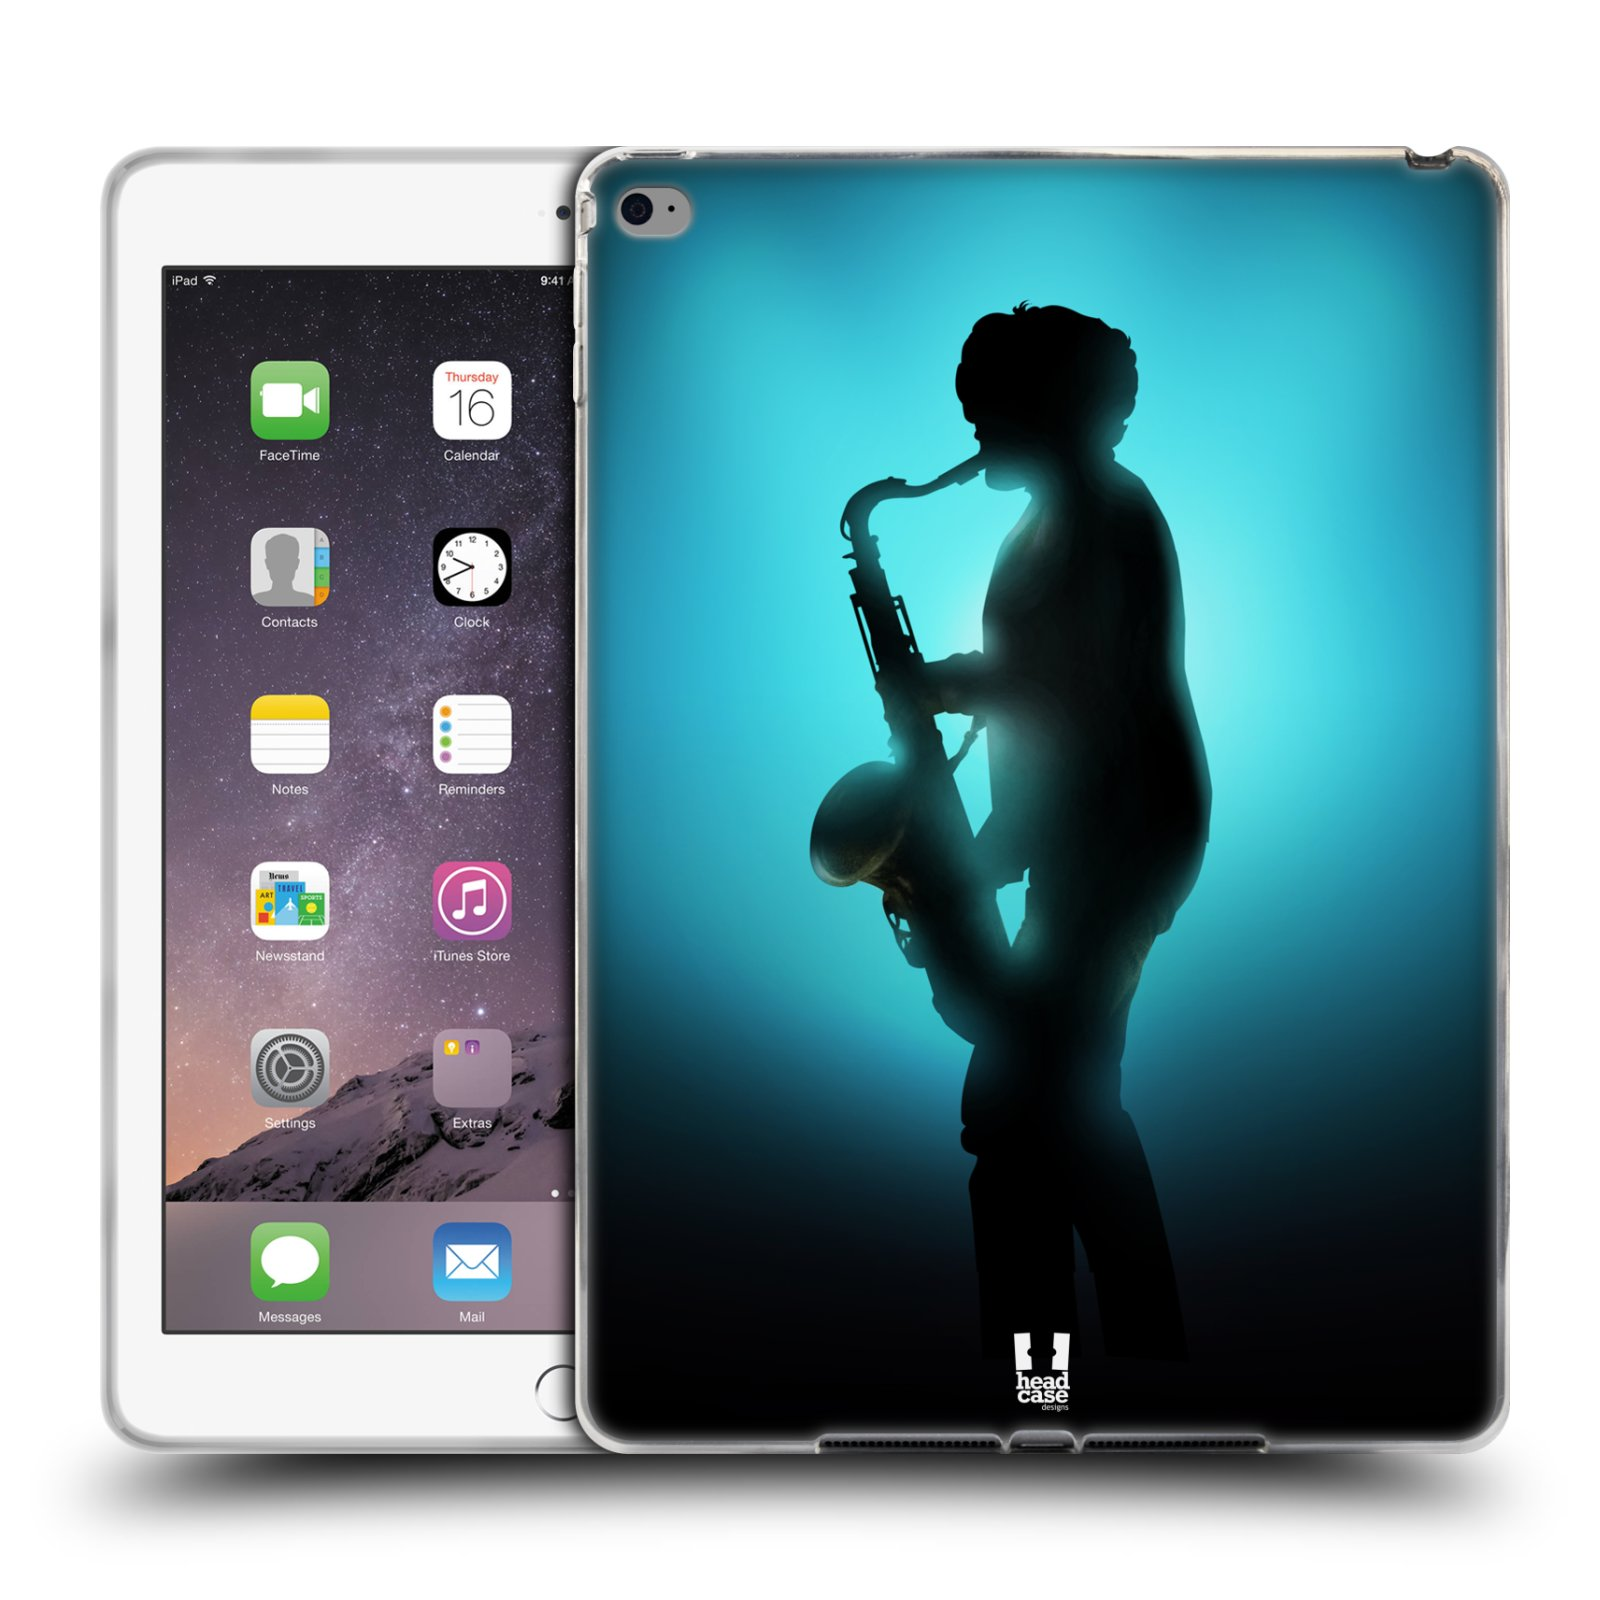 HEAD CASE DESIGNS SILHOUETTE PERFORMERS SOFT GEL CASE FOR ...